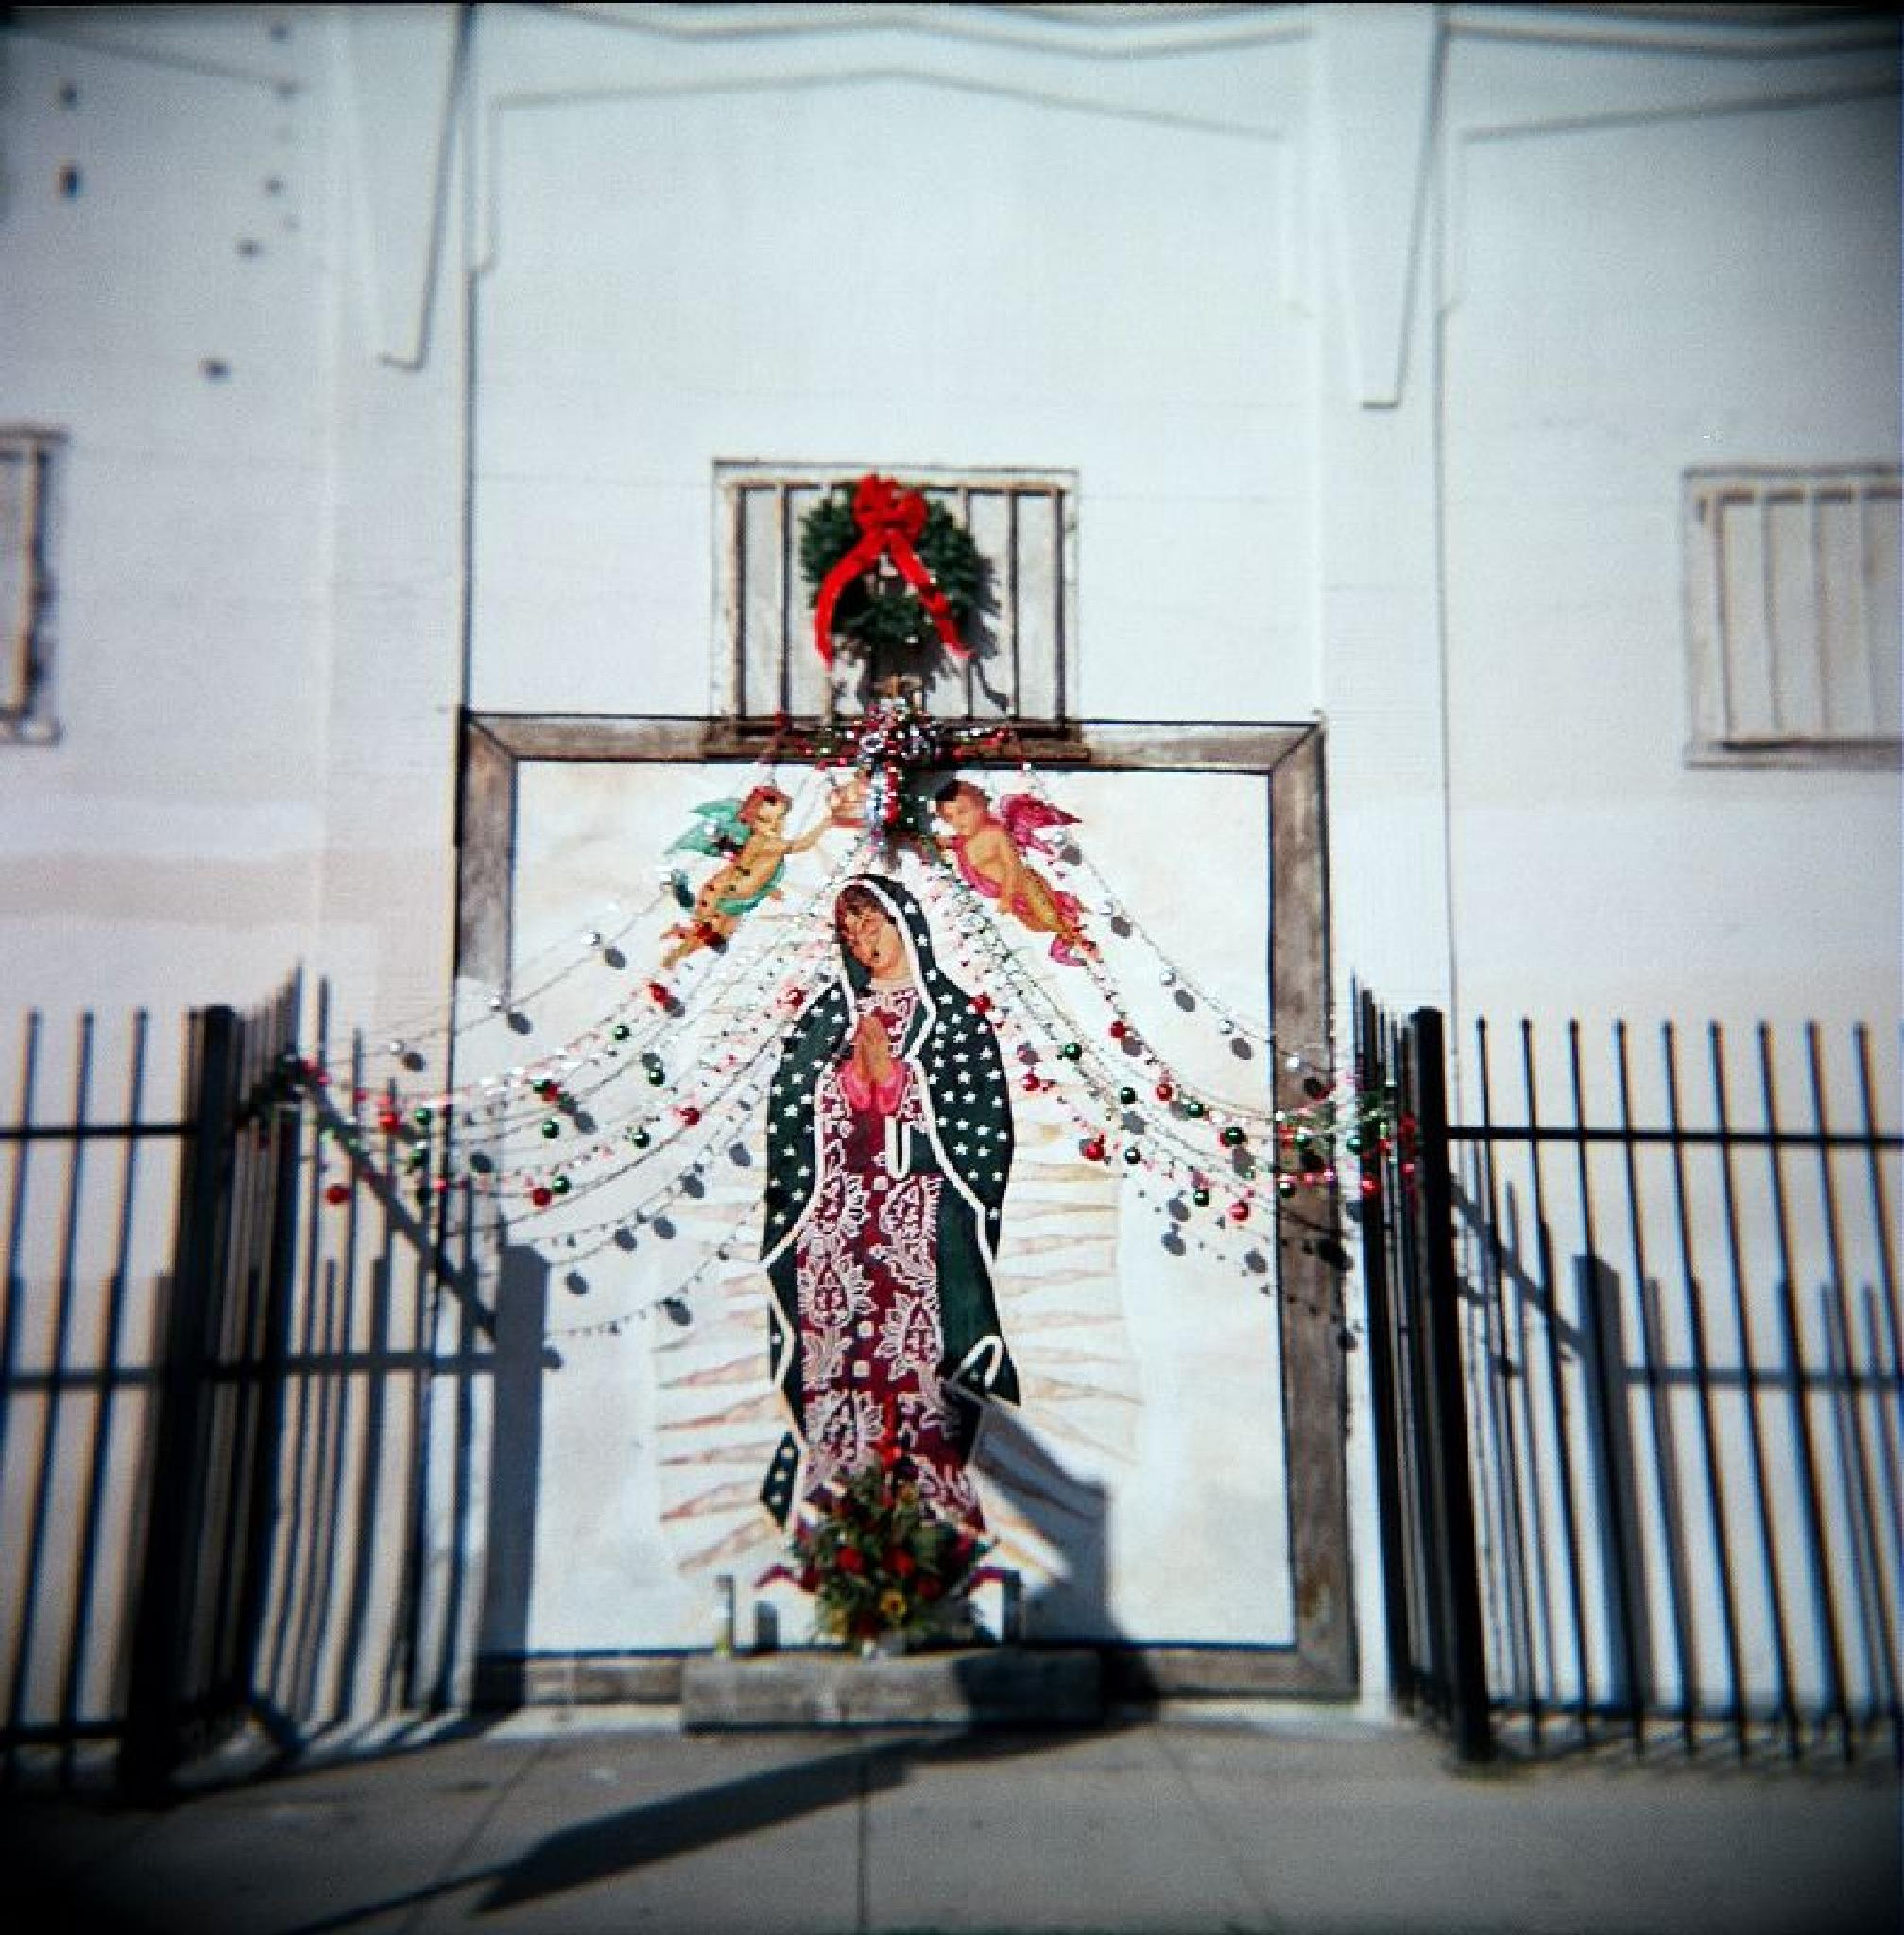 Shrine to the Virgin: East L.A. by T R Leventhal